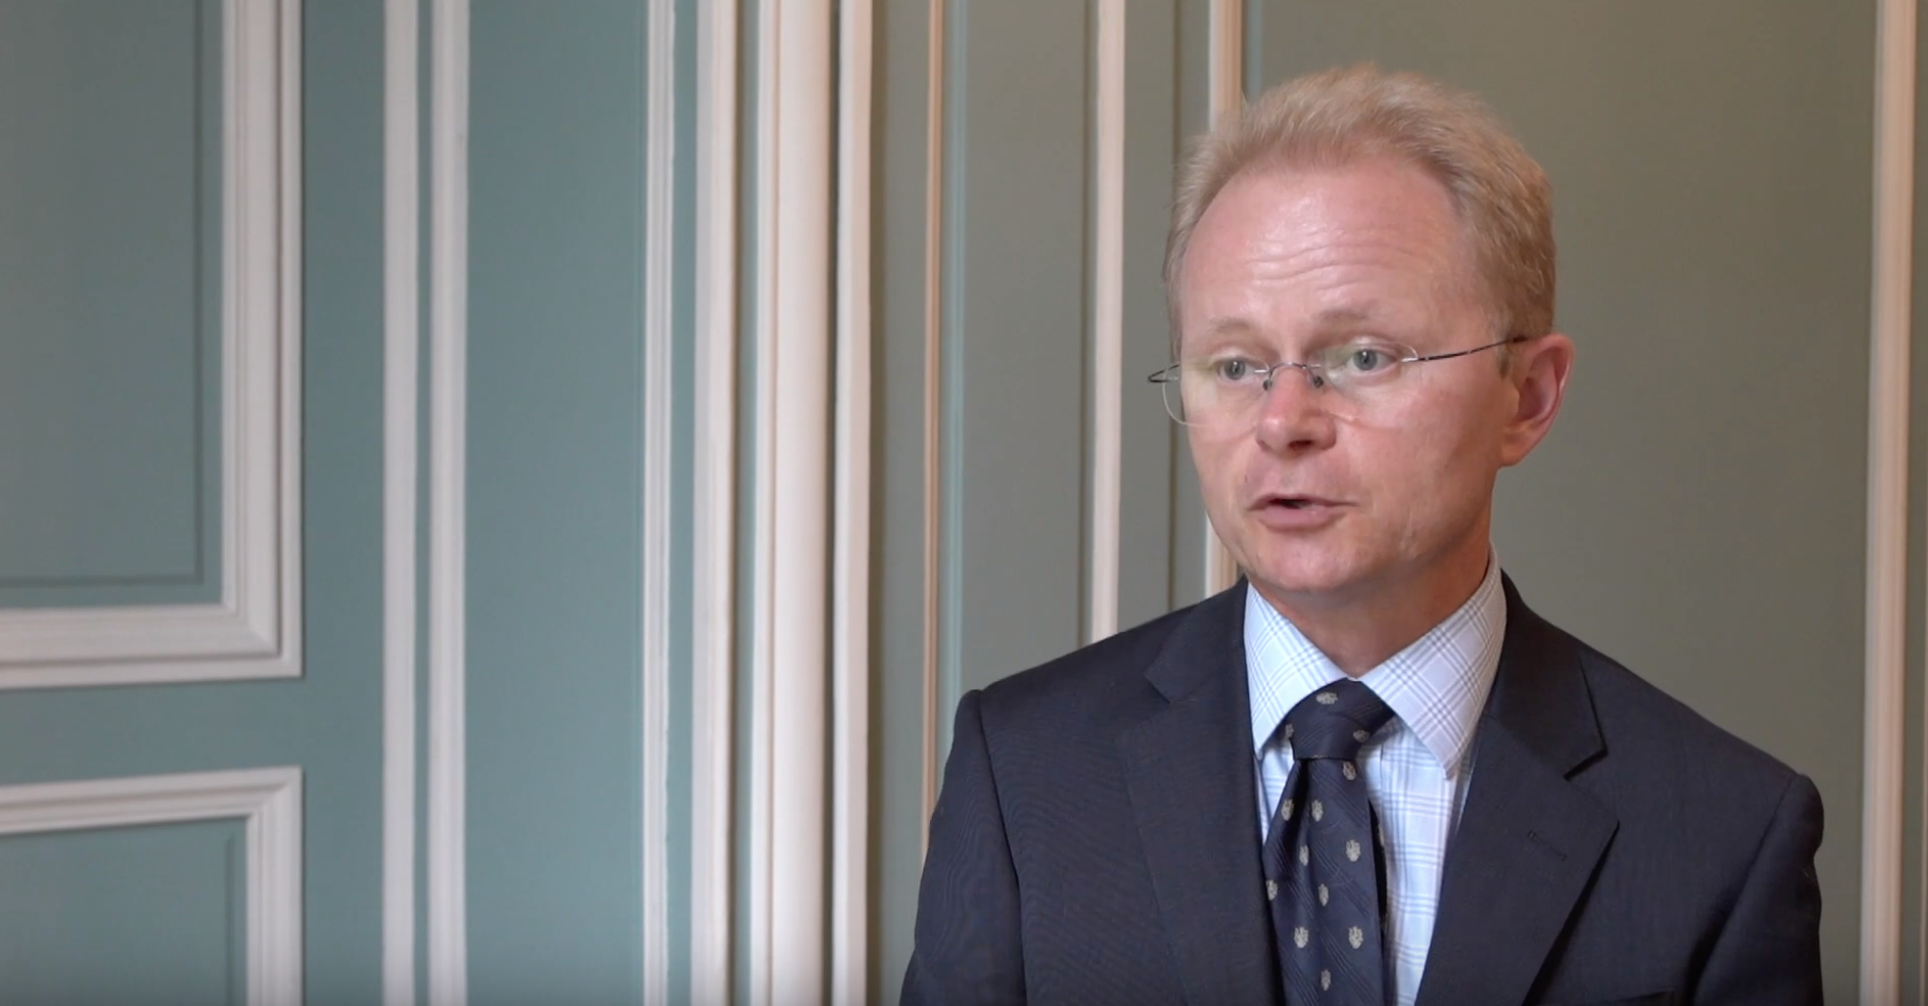 Dr. Mark Schipp is serving the first year of his three year term as the OIE president. (YouTube/OIEVideo)